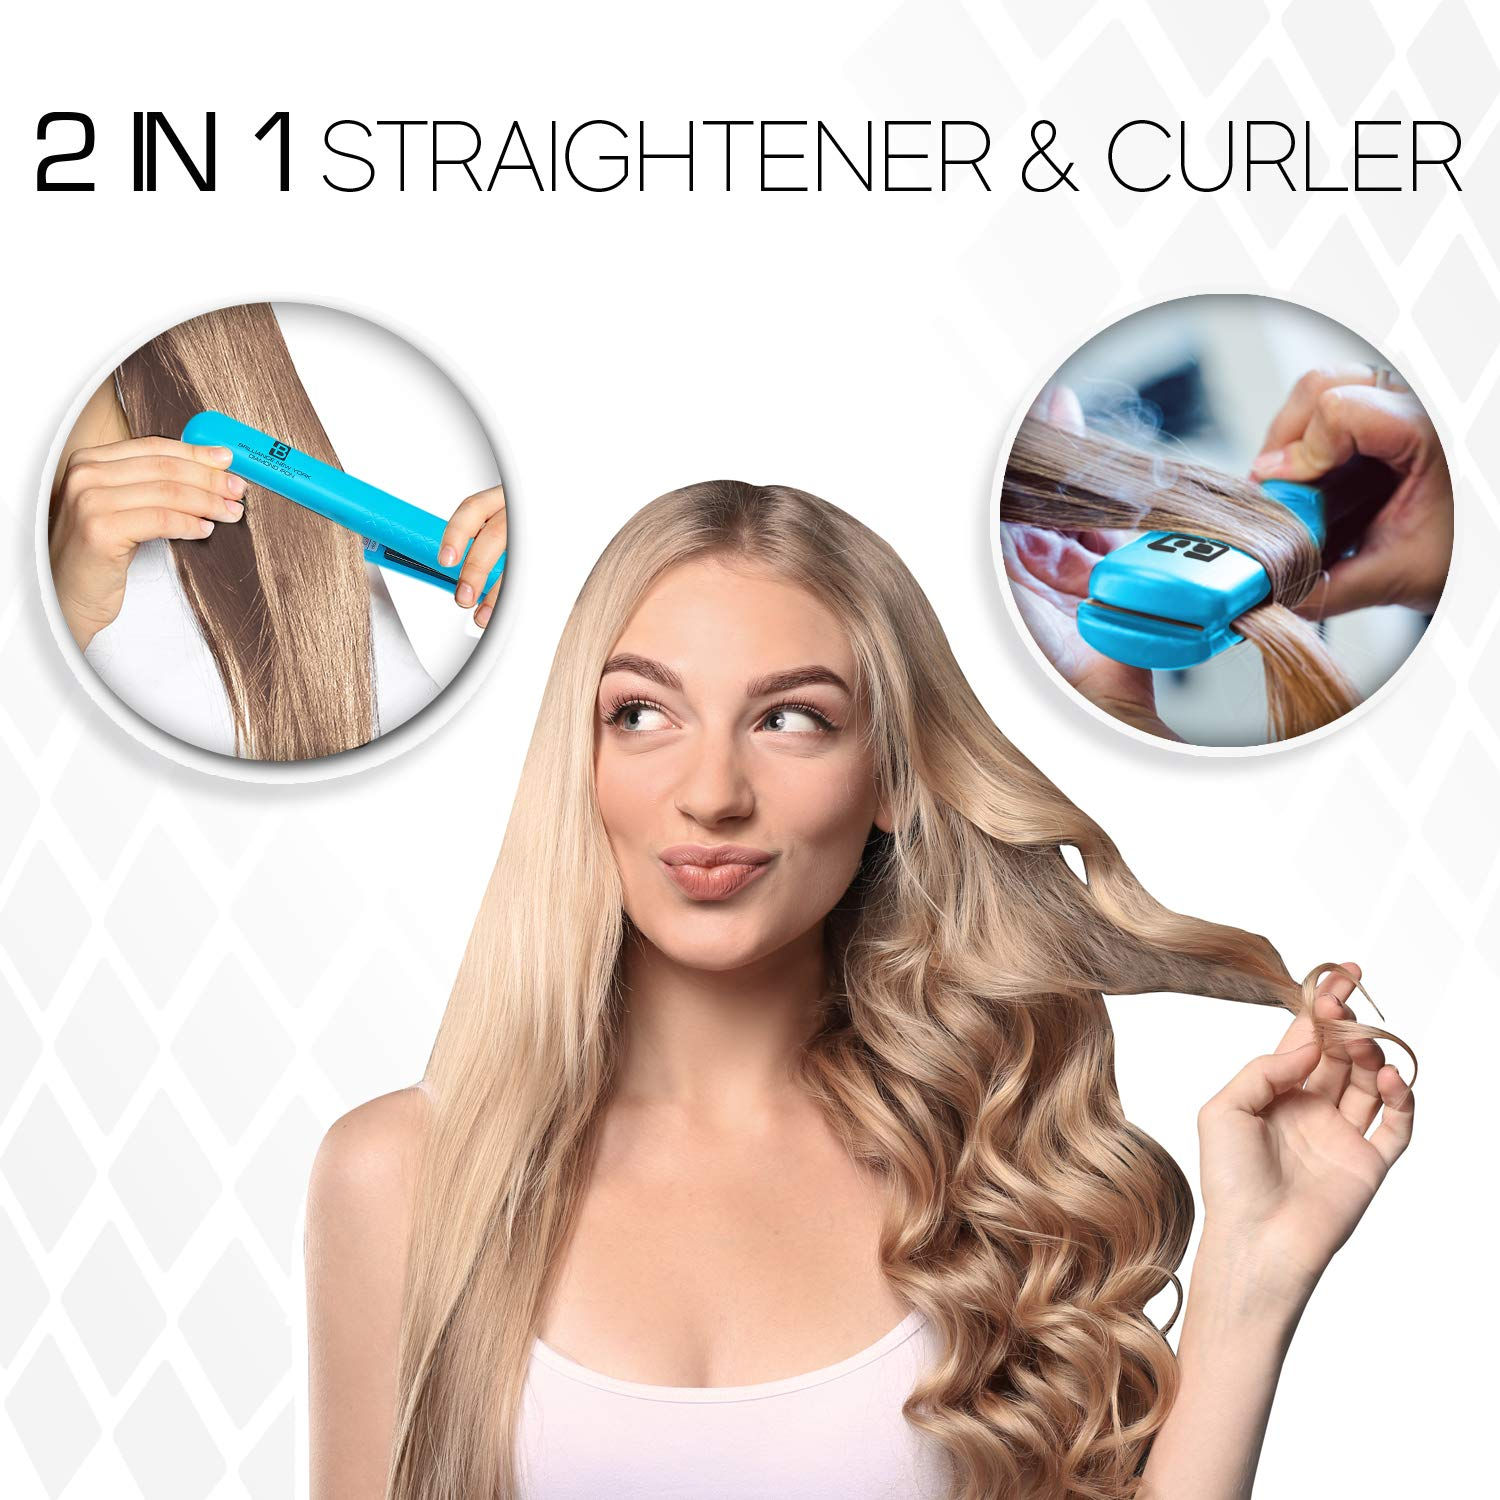 Brilliance New York - 1.25 Inch Diamond Ceramic flat iron - 2 in 1 hair Straightener and Curler - Frizz-free and Anti-static Ionic Plates